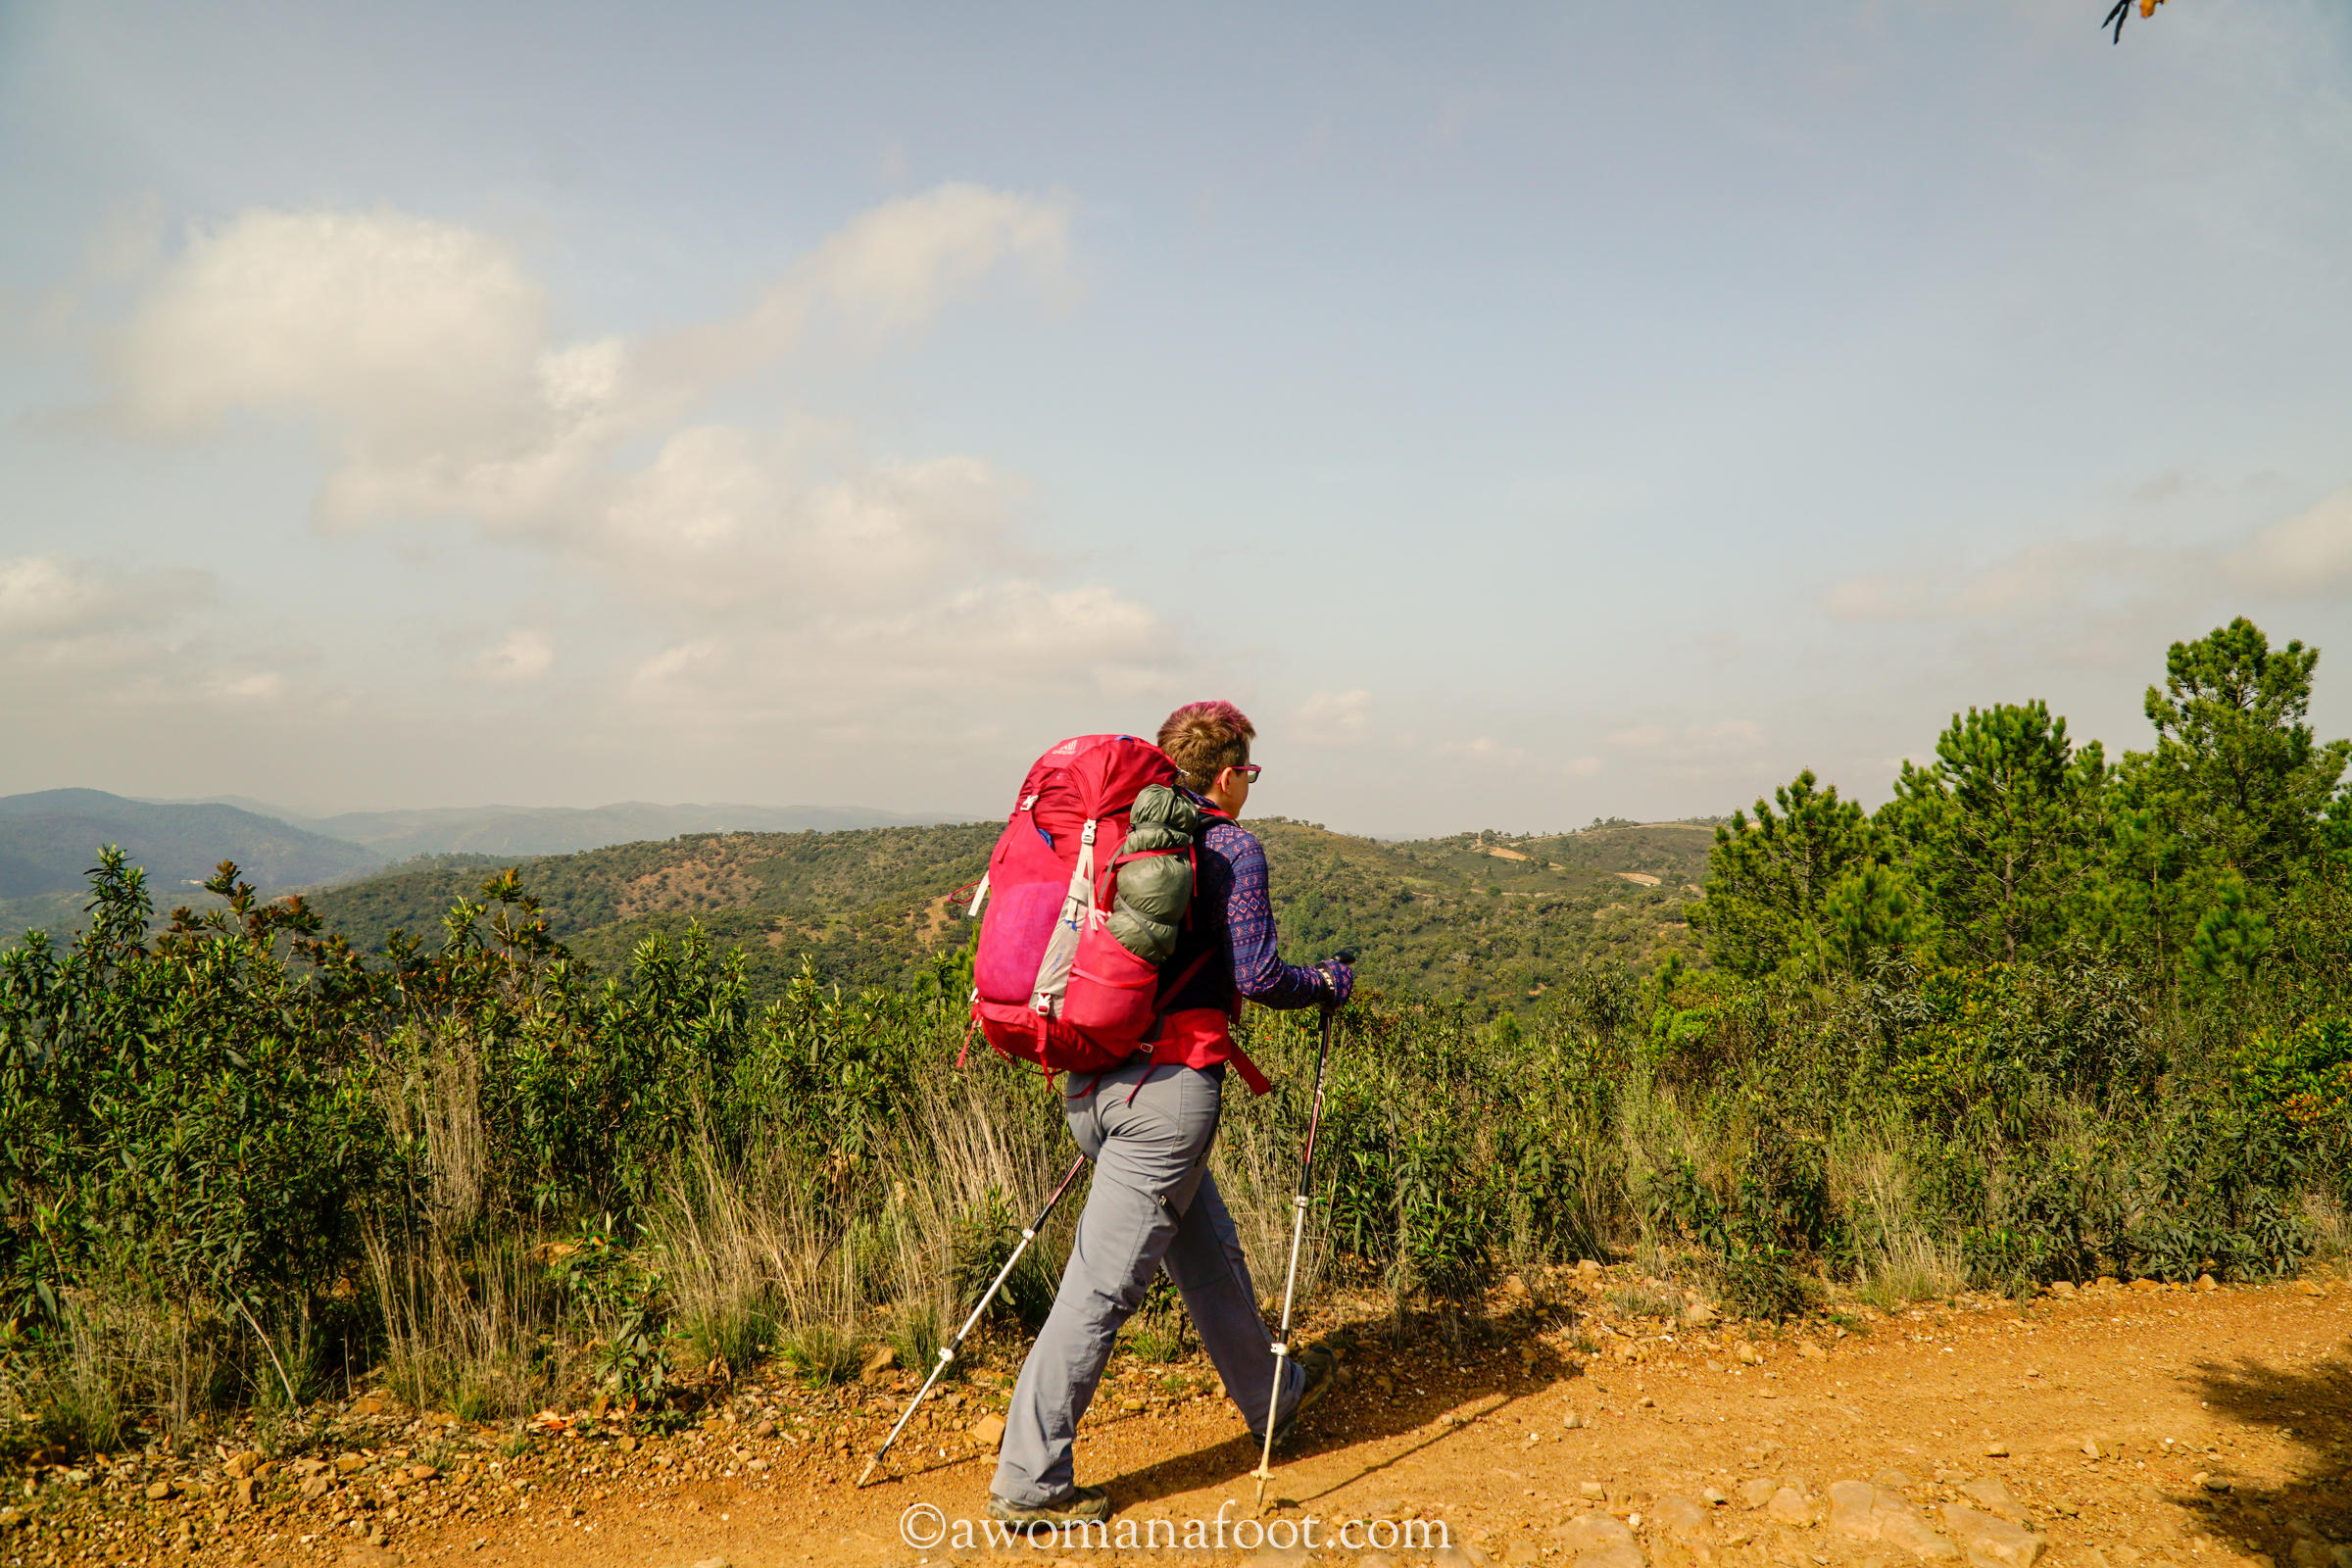 Hiking solo in Portugal on the Via Algarviana Trail! Click to read about the section from Barranco do Velho, through Messines, Alte to Silves @awomanafoot.com. Active travel in Portugal | Hiking trails in Europe | Female solo hikers | Anxiety | What to do in Algarve | #Hiking #Portugal #Algarve #ViaAlgarviana #HikingSolo #Outdoors #Anxiety #wildcamping #EuropeanTrail